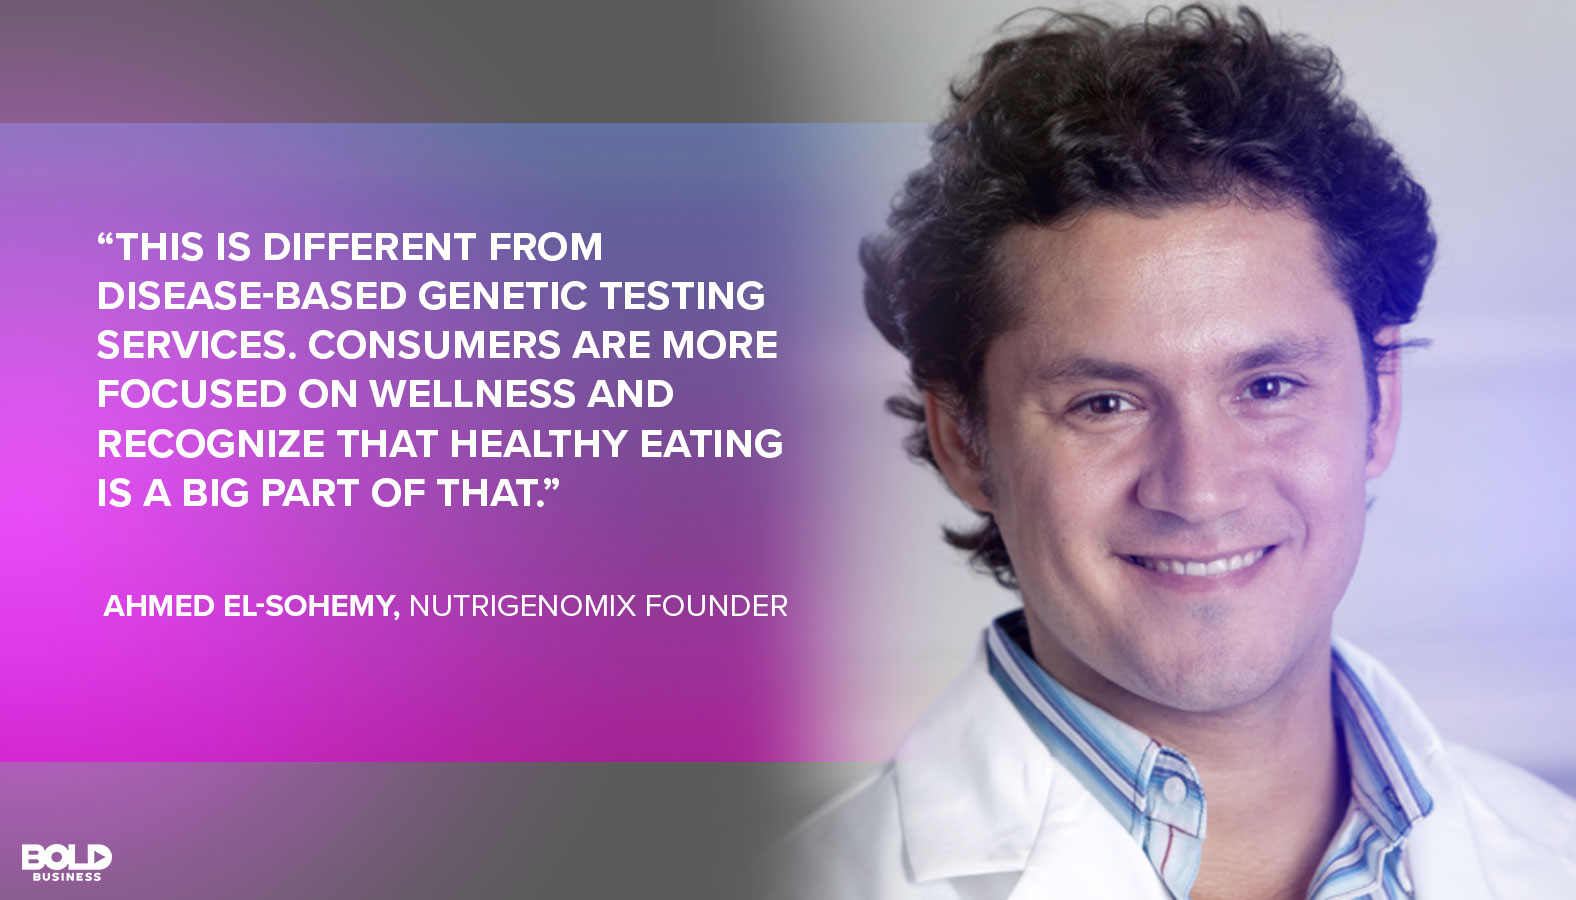 Ahmed El-Sohemy, Nutrigenomix Founder discussing Epigenetics and personalized nutrition